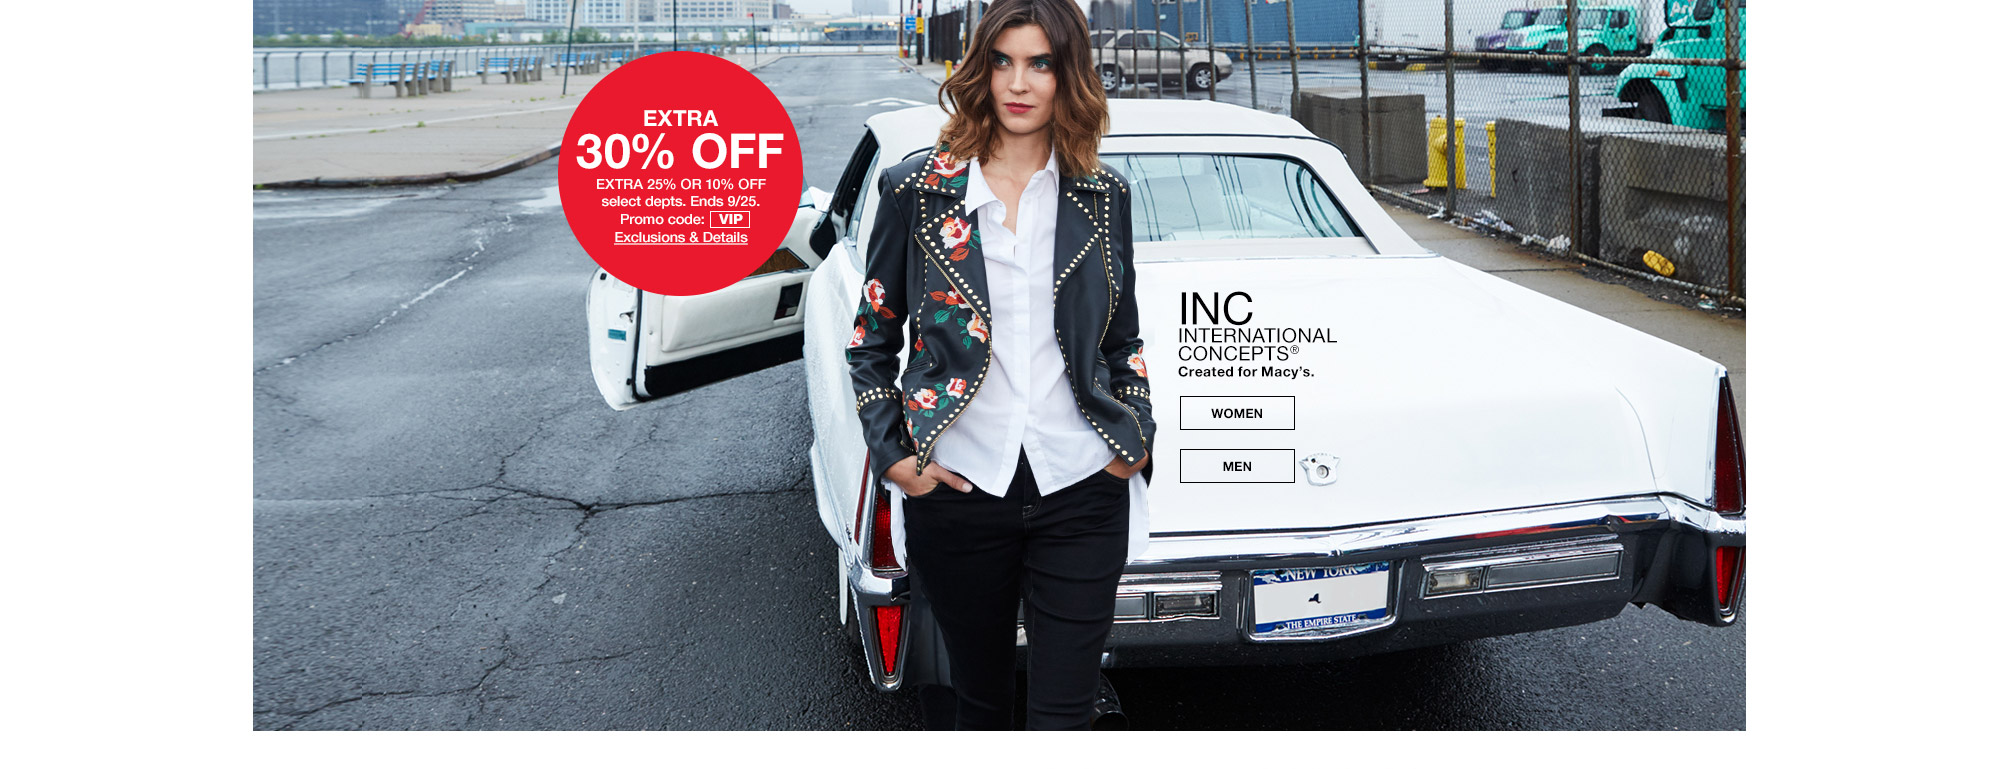 inc international concepts. created for macys. extra 30 percent off. extra 25 percent or 10 percent off select departments. ends september 25th. promo code. vip